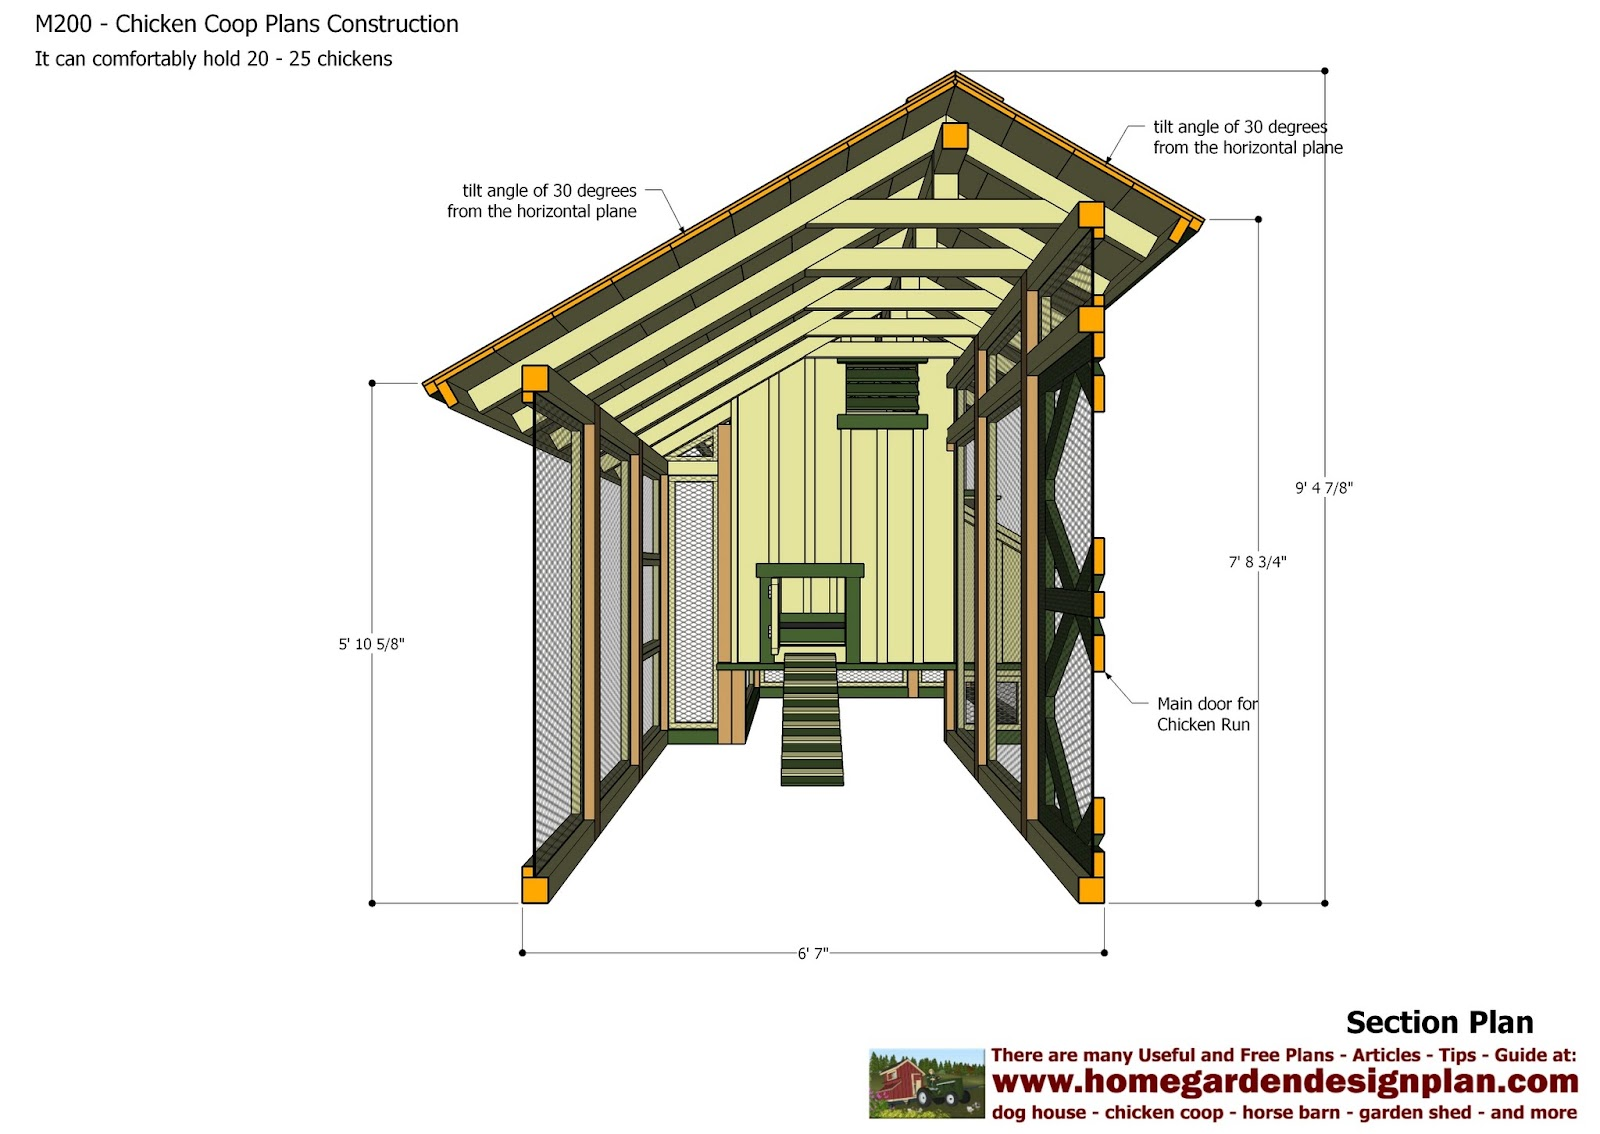 Home garden plans m200 chicken coop plans construction for House construction plans